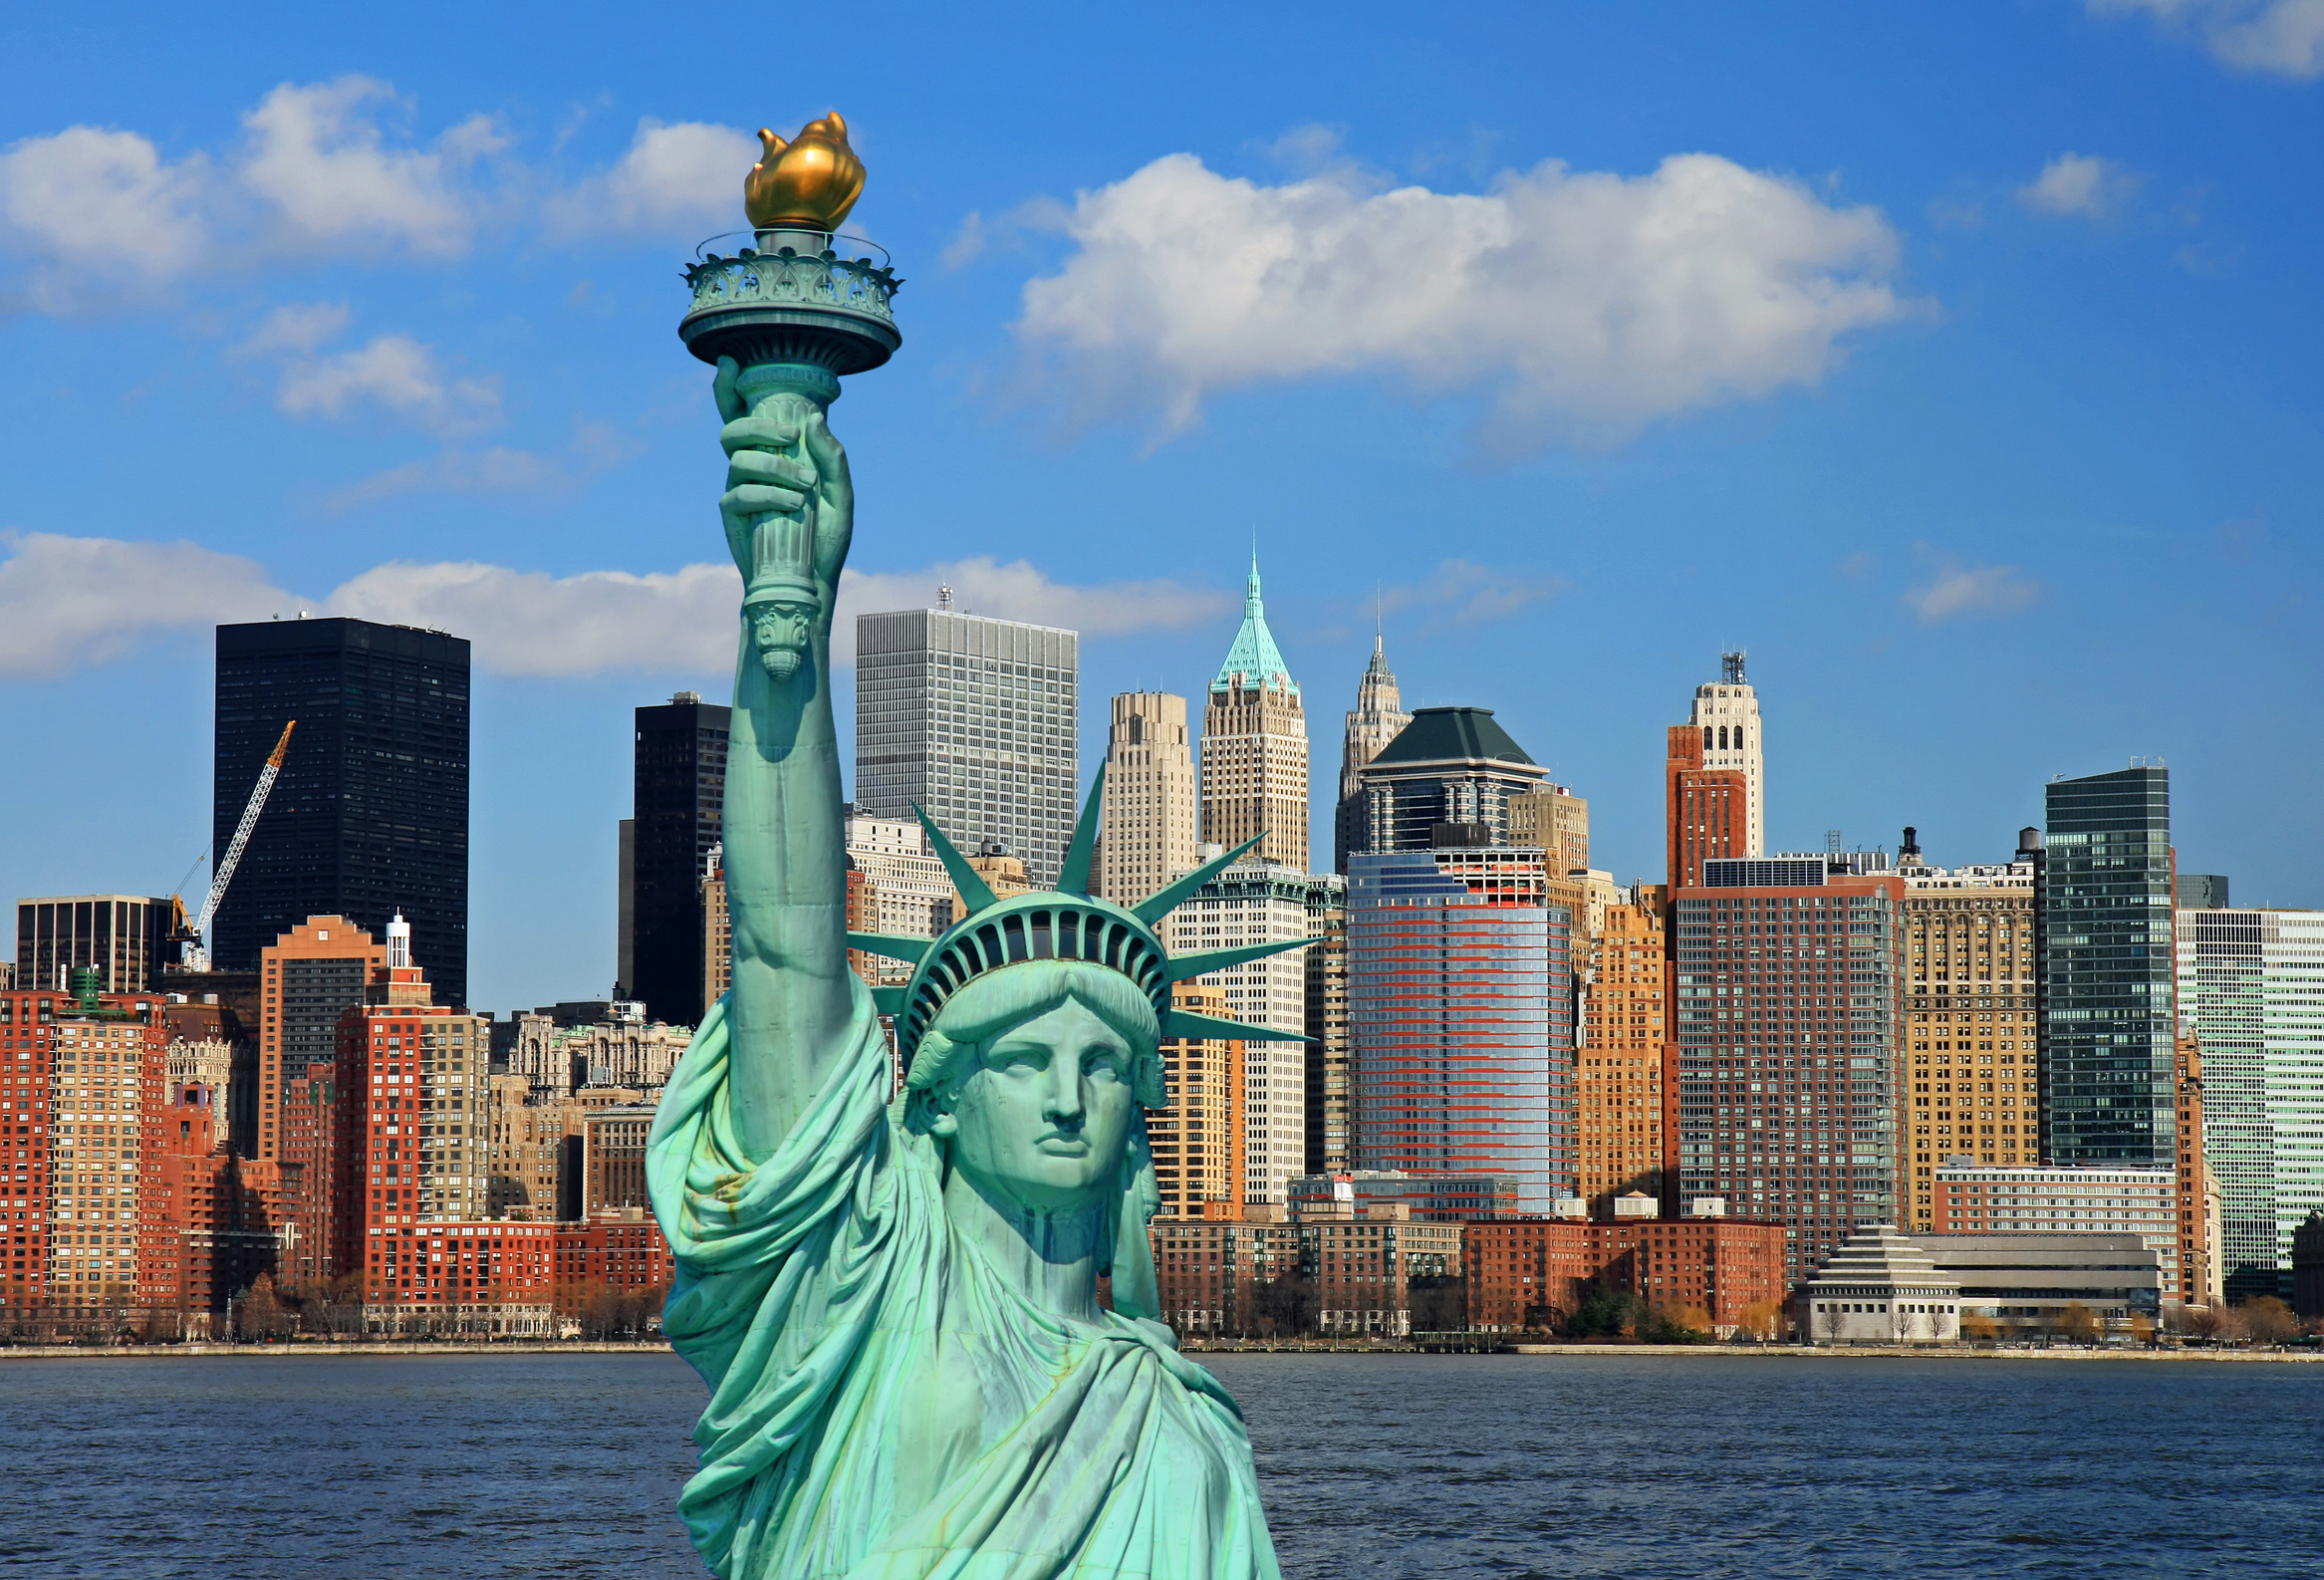 Statue of Liberty wallpapers Statue of Liberty background 2333x1586